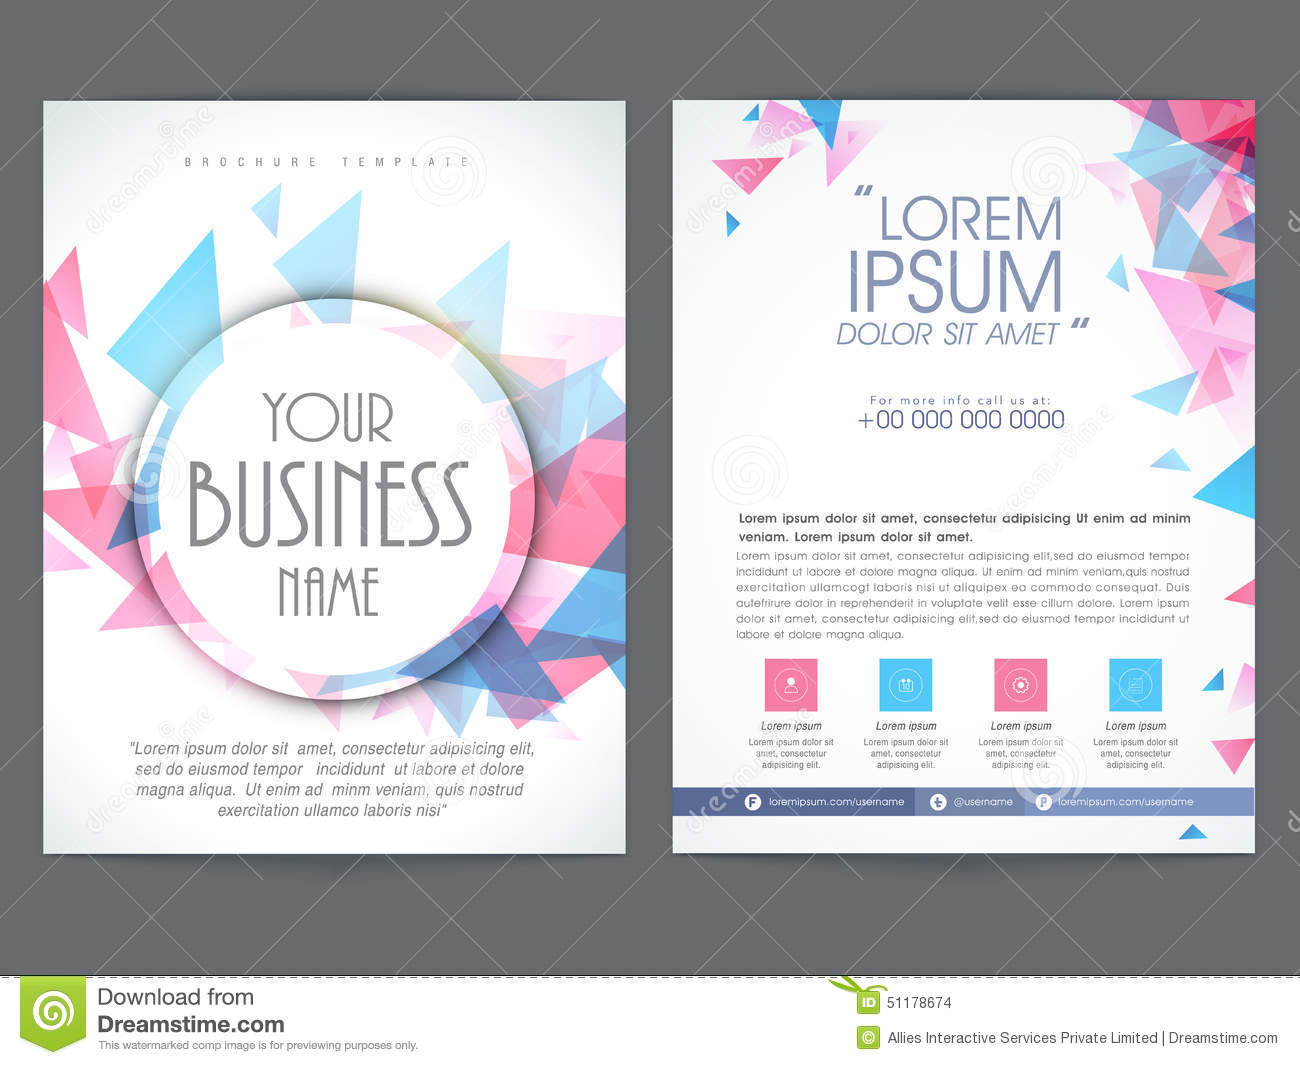 pages brochure template - brochure or flyer design for business stock illustration